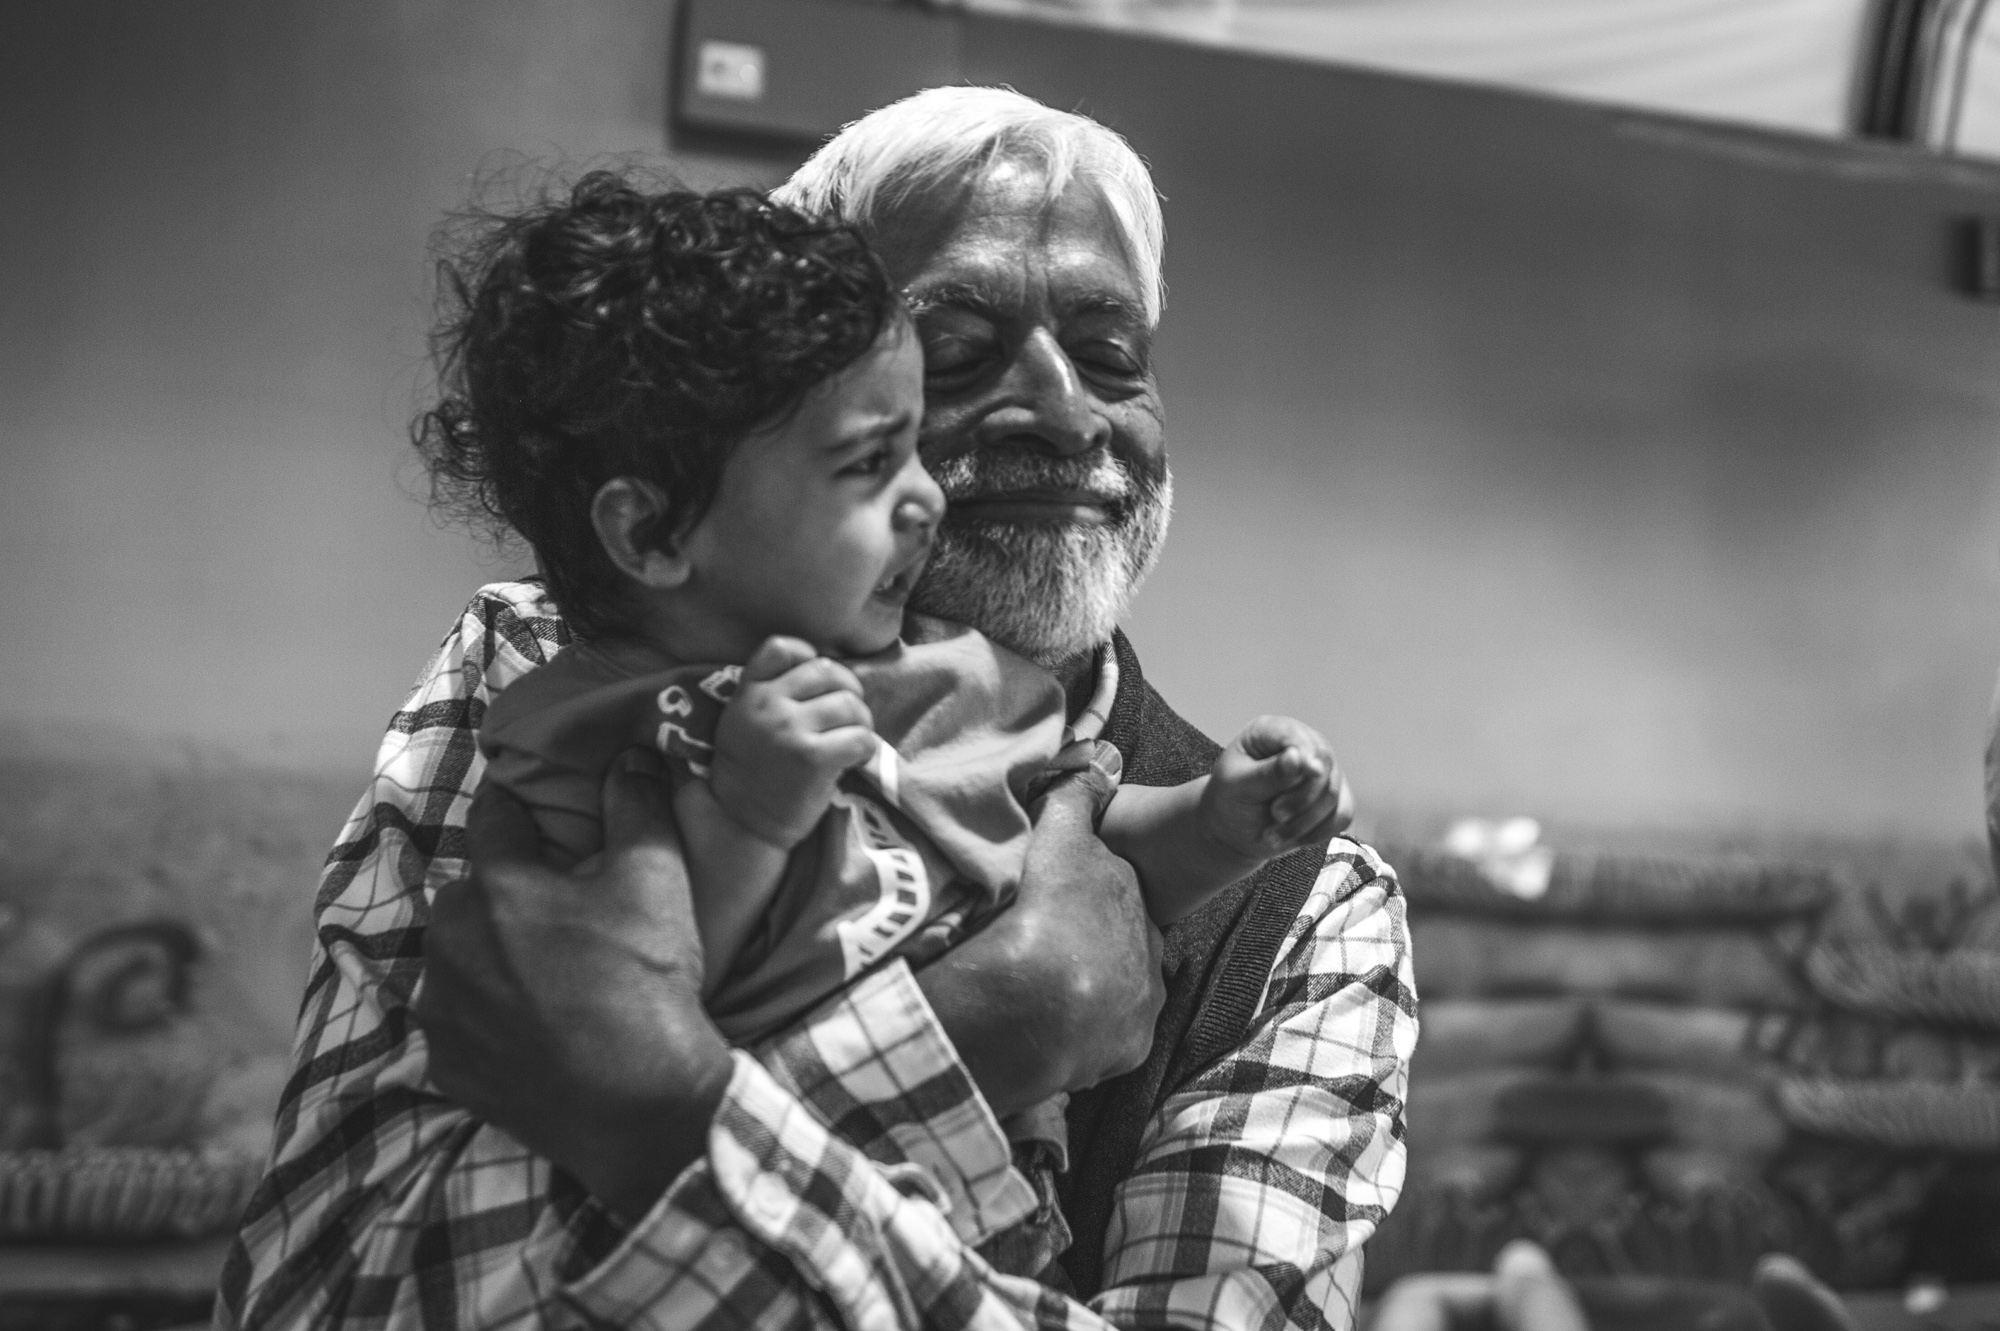 Man hugs one year old boy and smiles wide, black and white